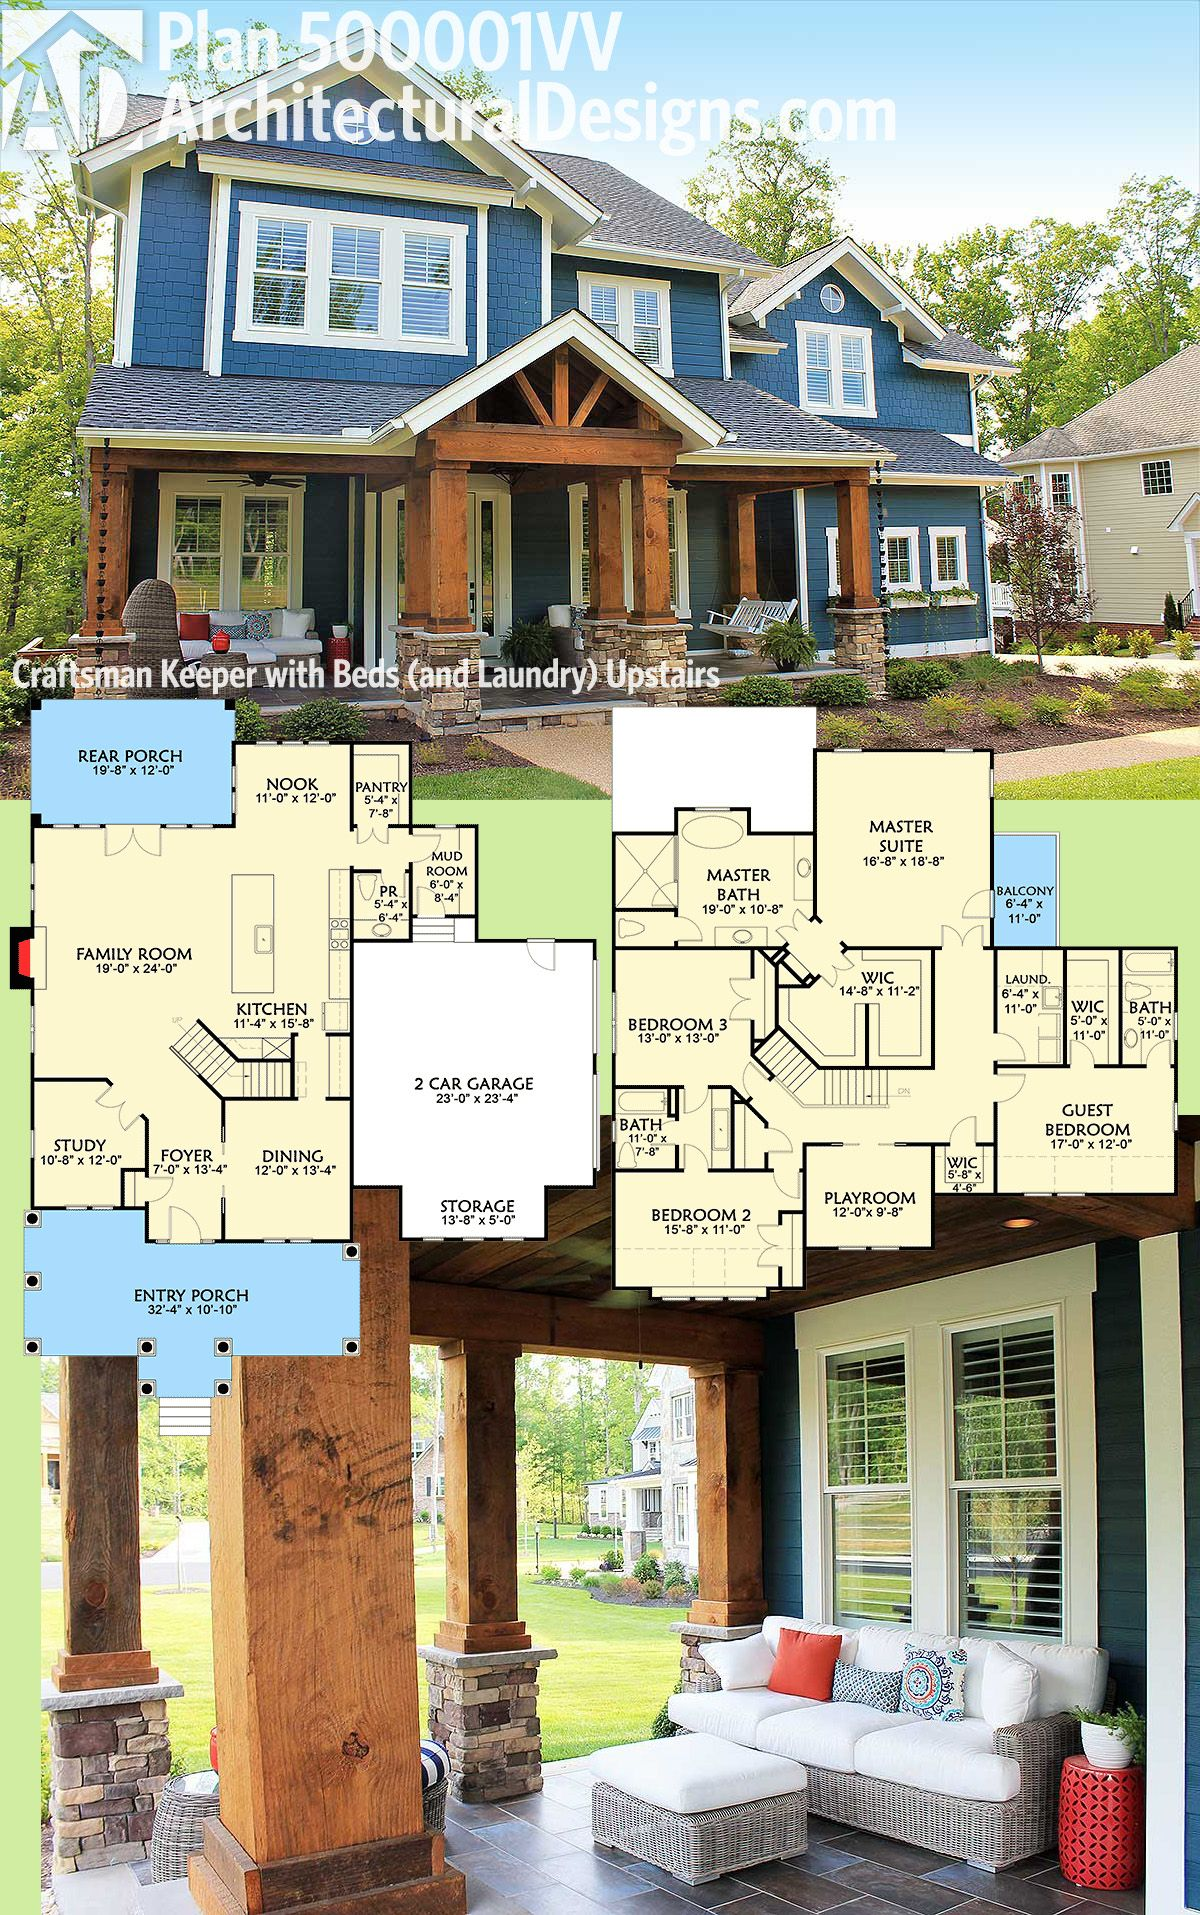 Plan 500001vv craftsman keeper with beds and laundry for Upstairs house plans